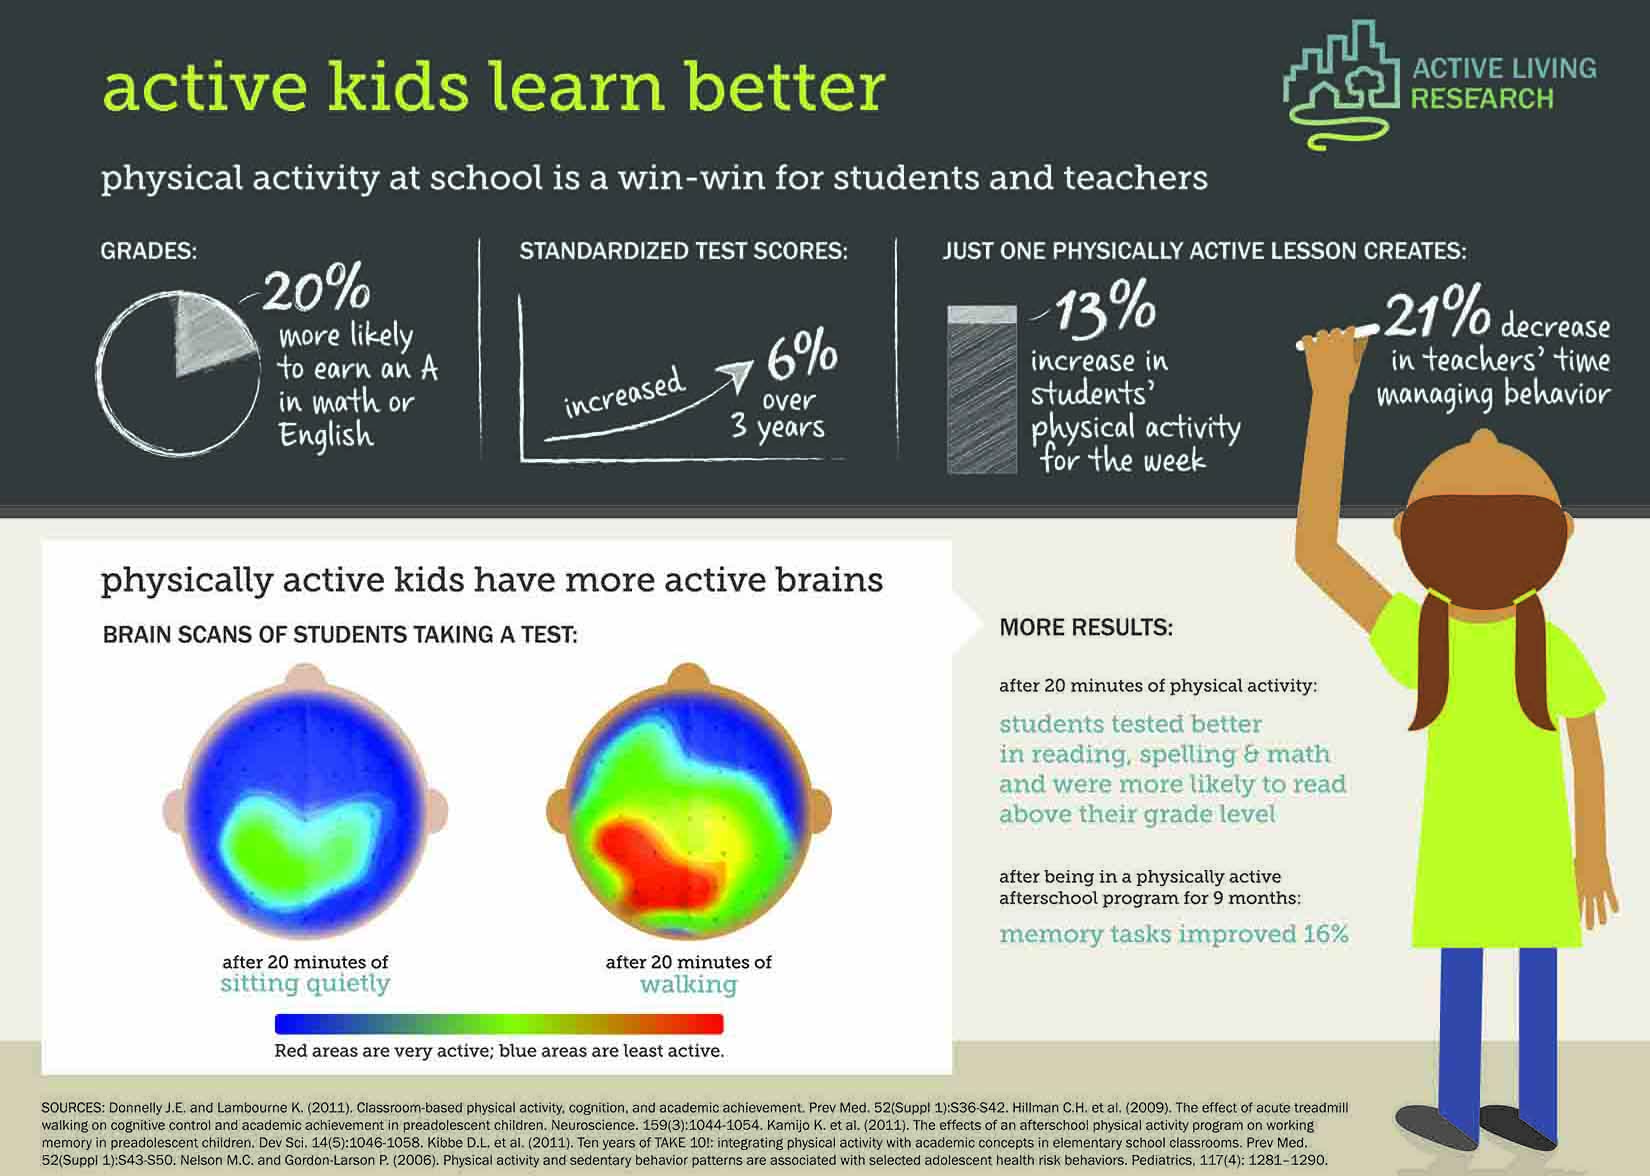 active kids learn better